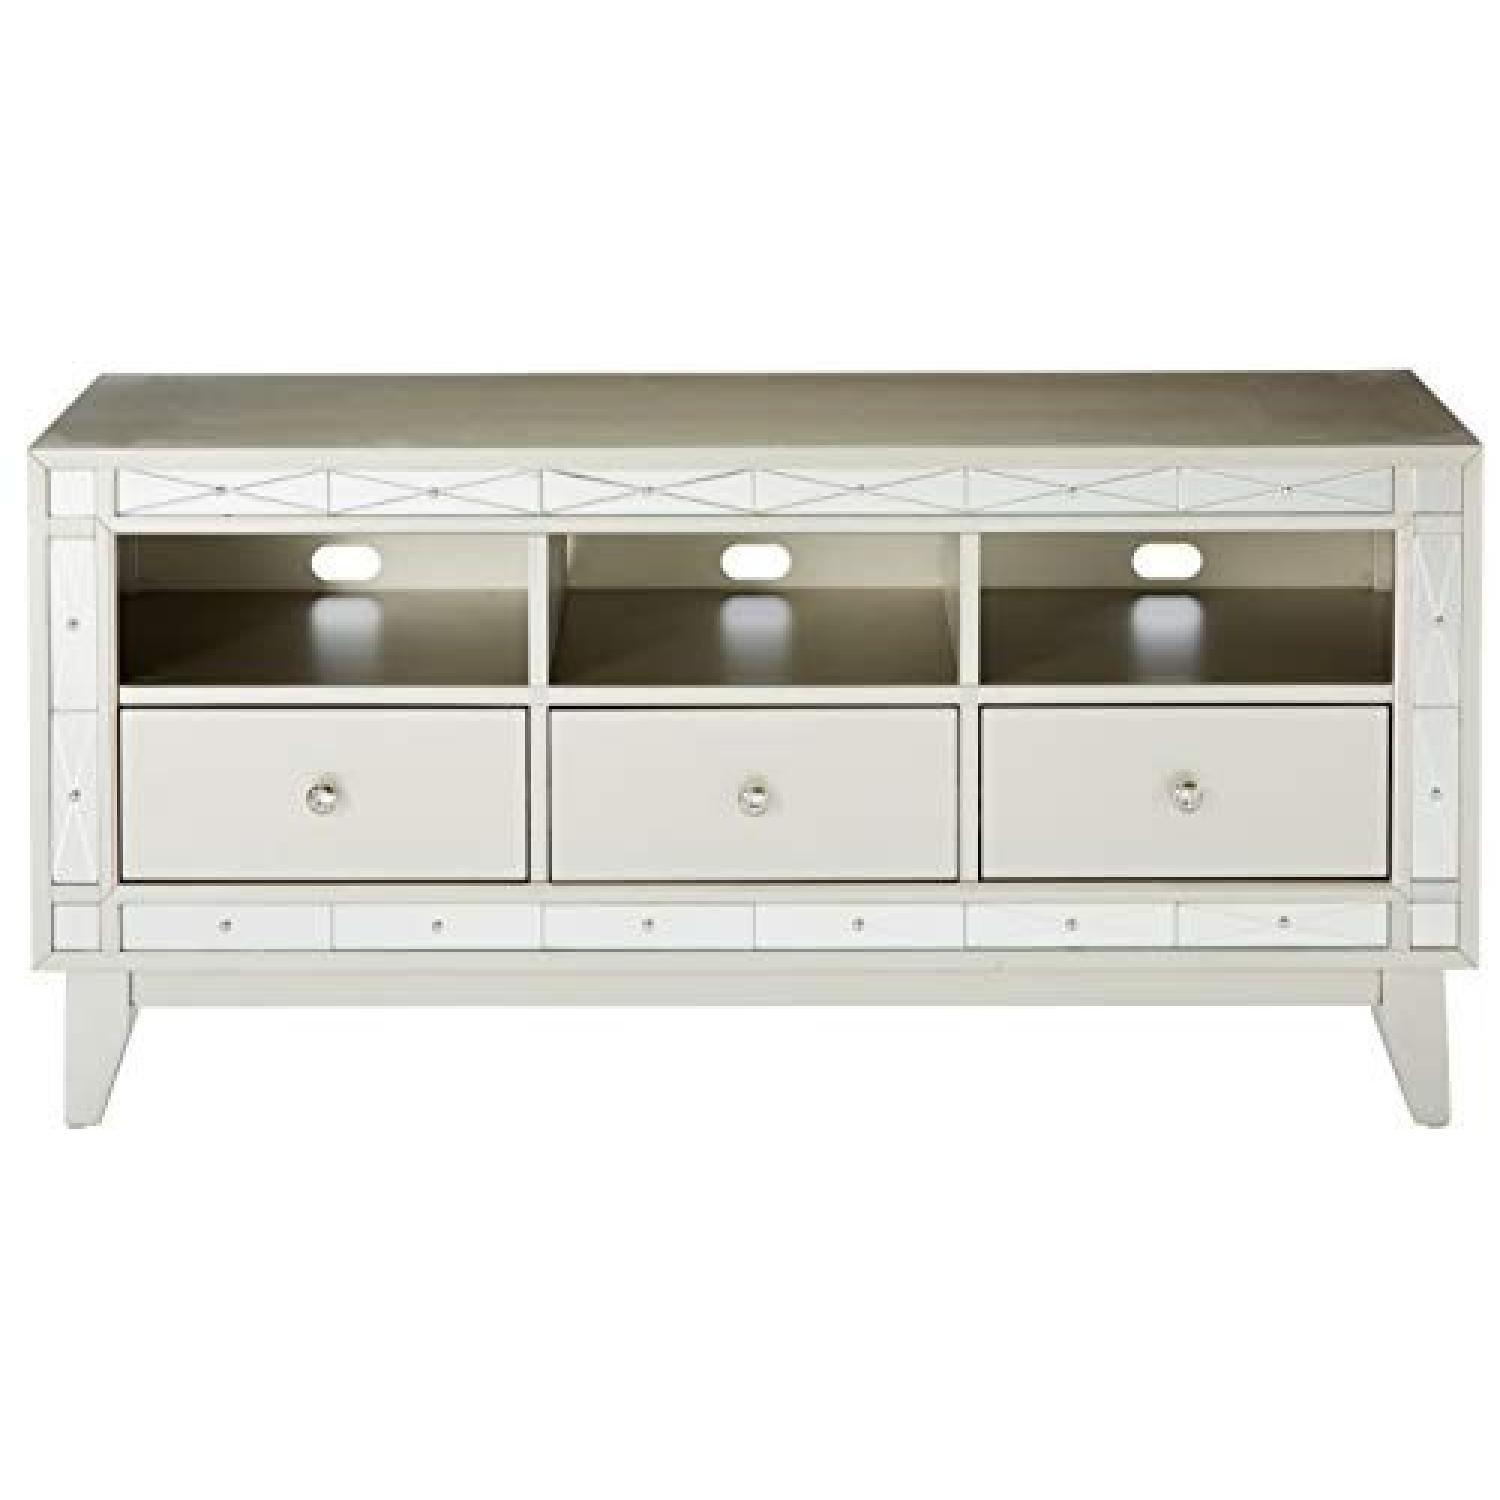 Mercury TV Console w/ X Etched Frame